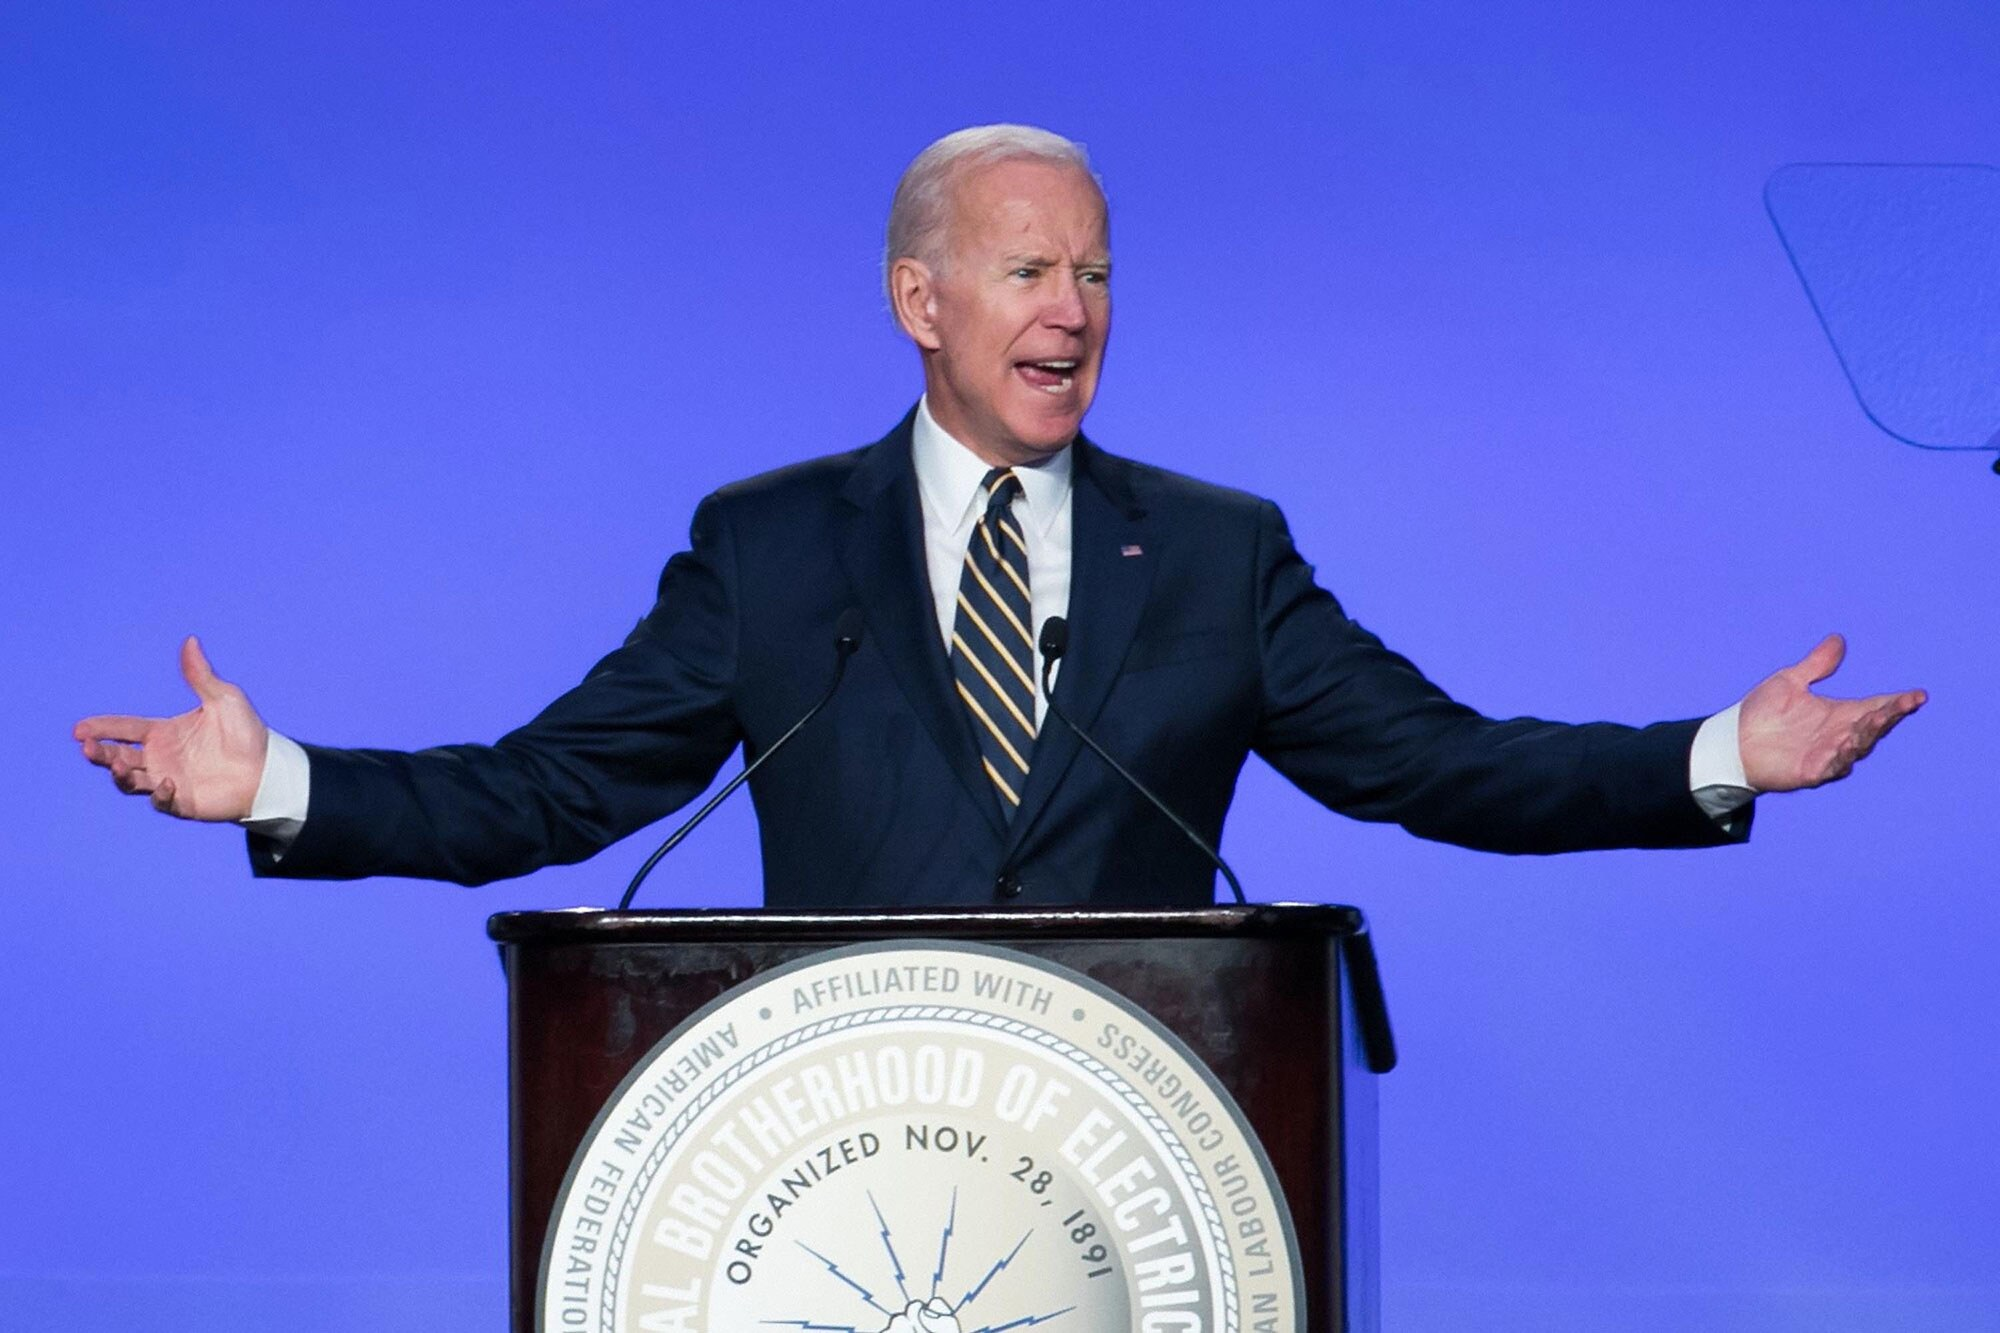 Biden Gaffes Again, This Time on Healthcare